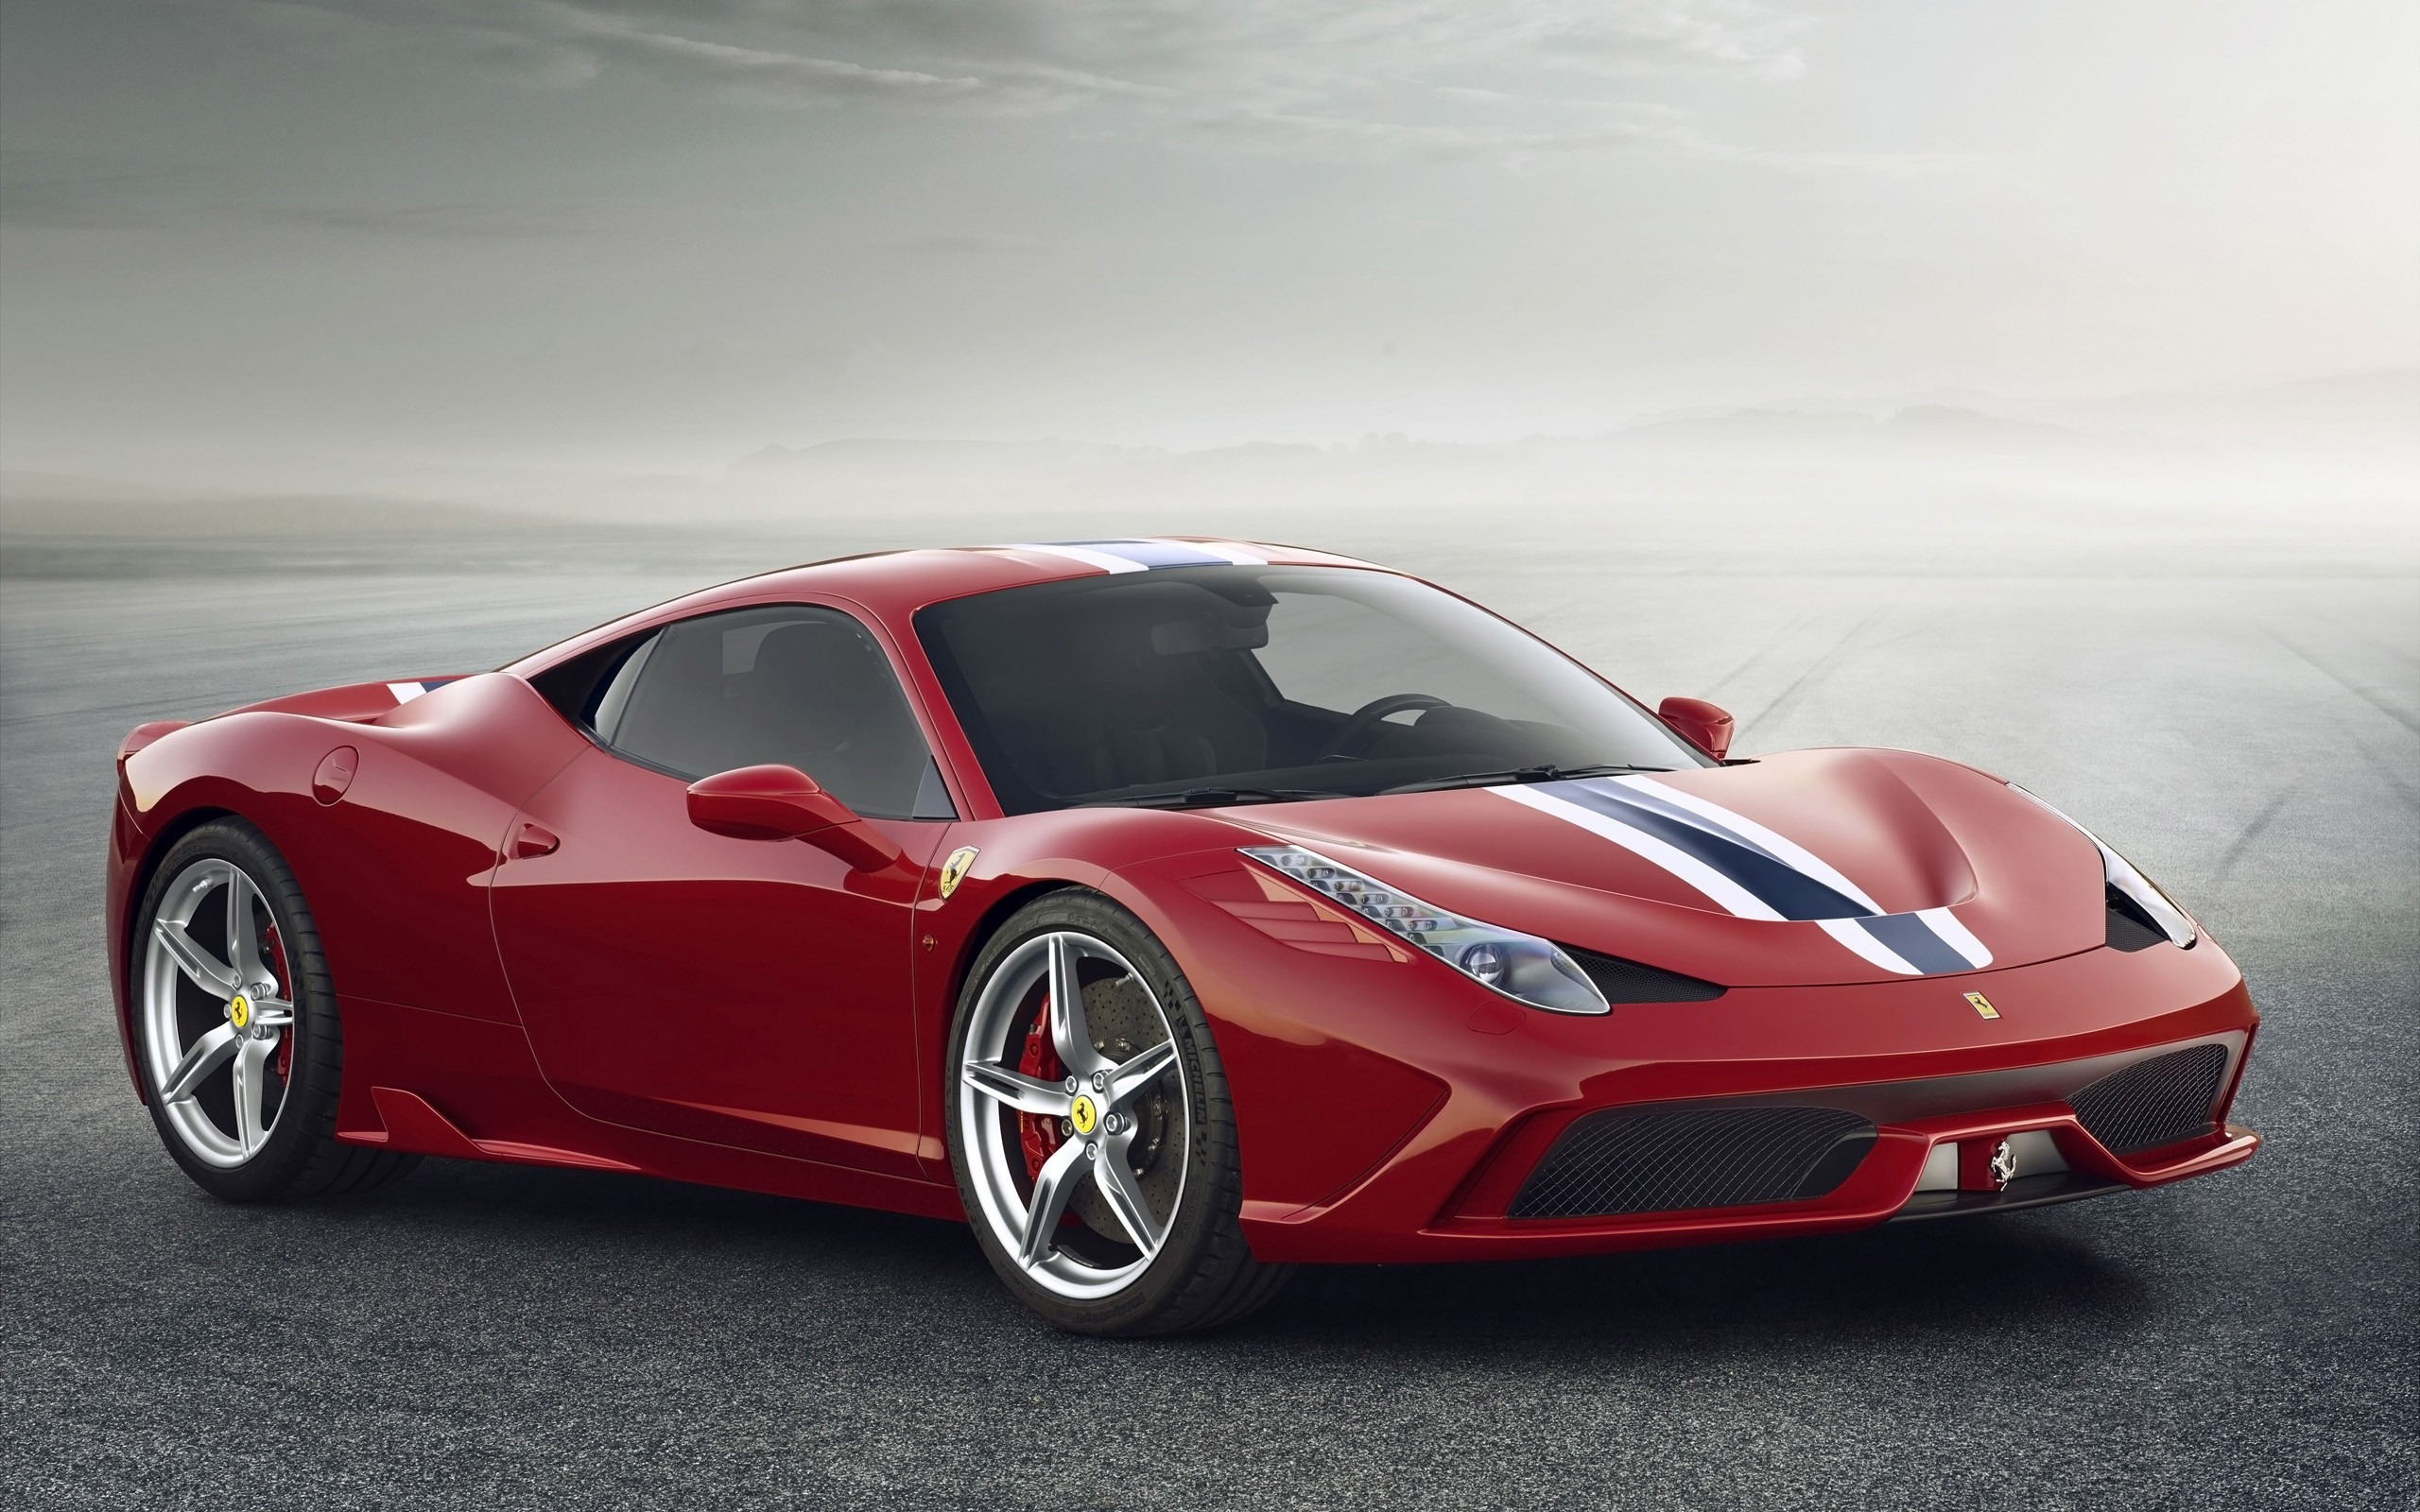 2560x1600 Ferrari 458, Car, Supercars